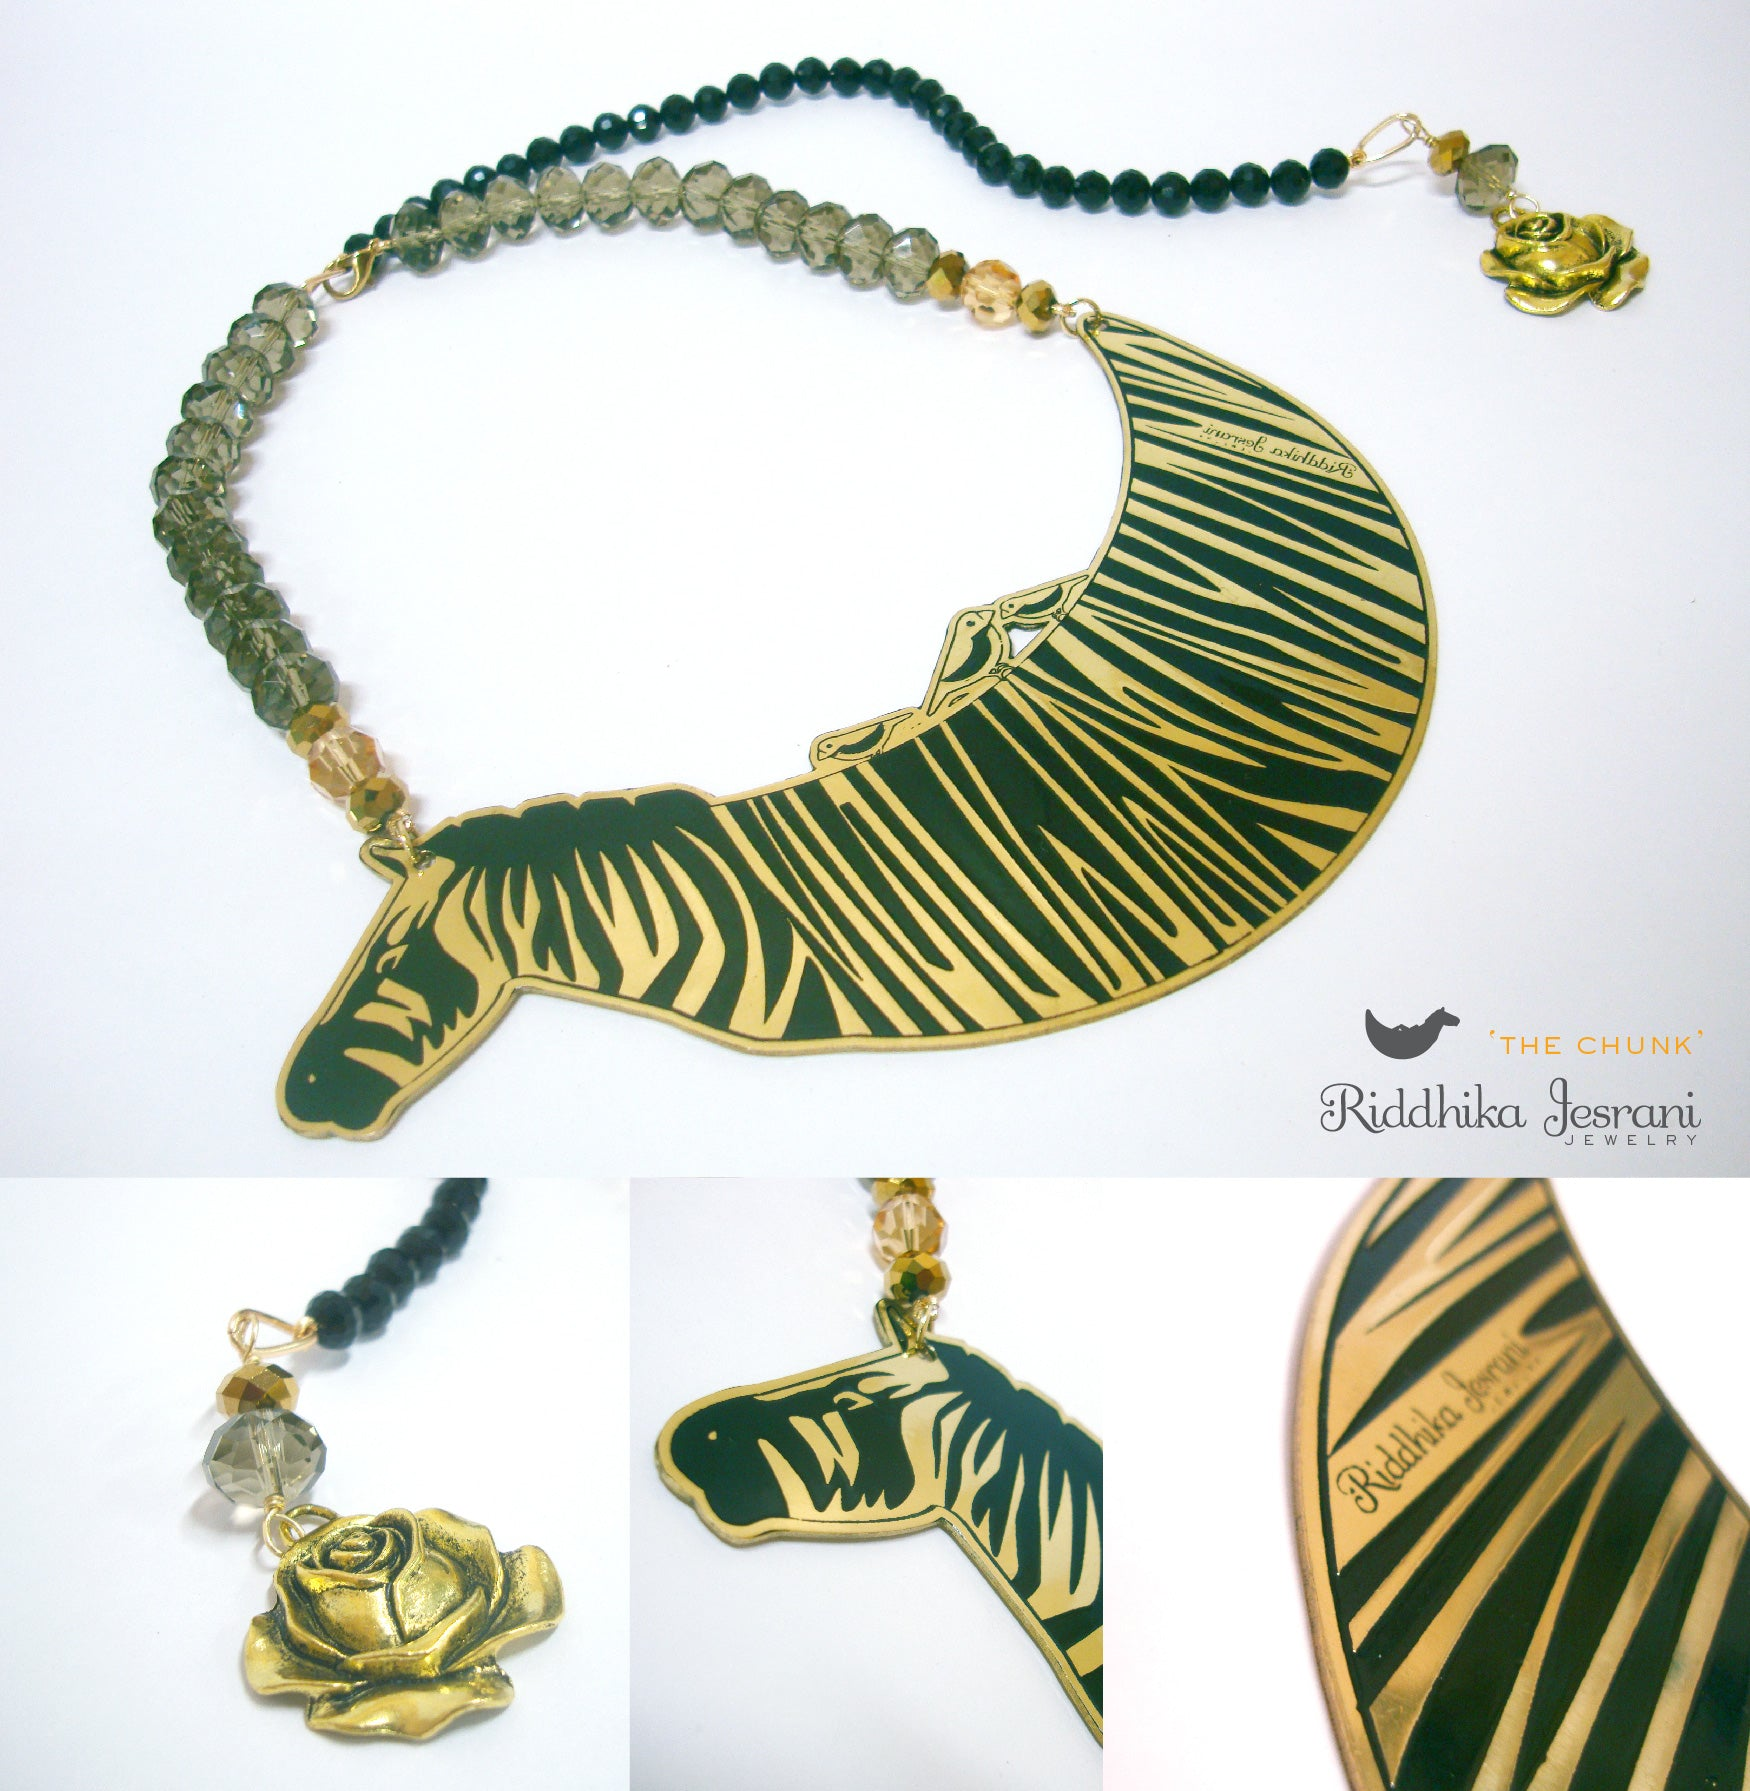 Animal Love Costume Jewelry in India by Riddhika Jesrani  'The Chunk' Necklace